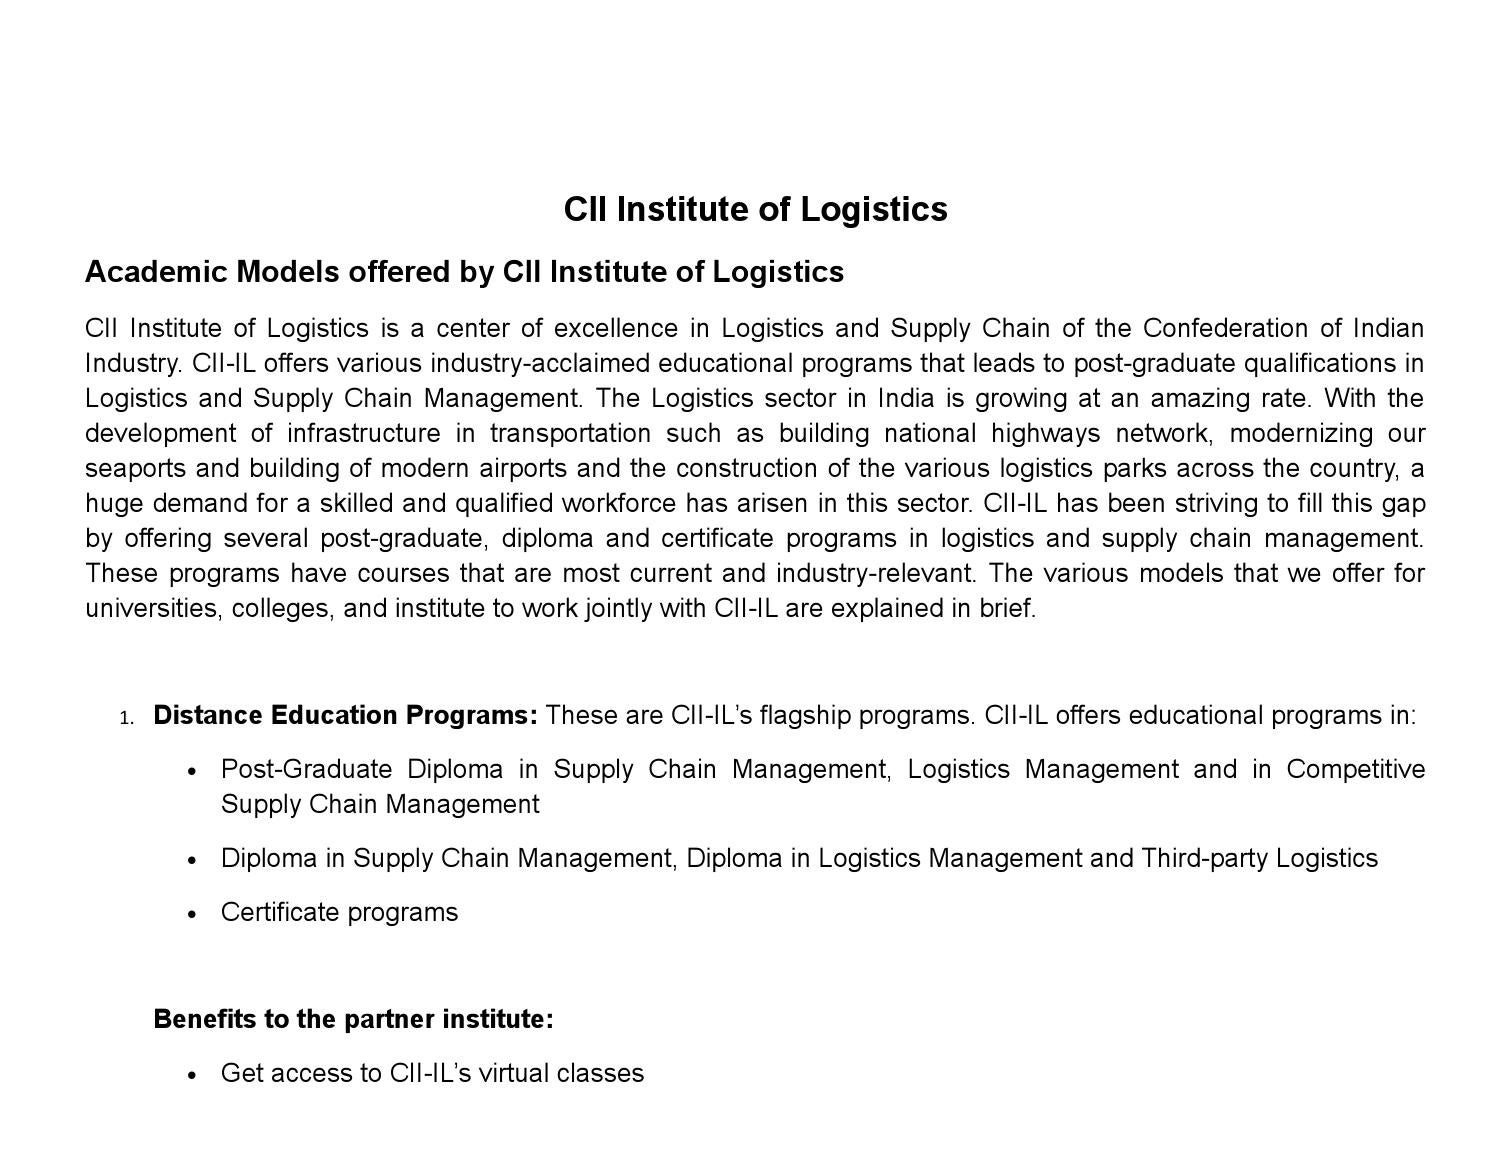 Details About The Academic Models Offered By Cii Institute Of